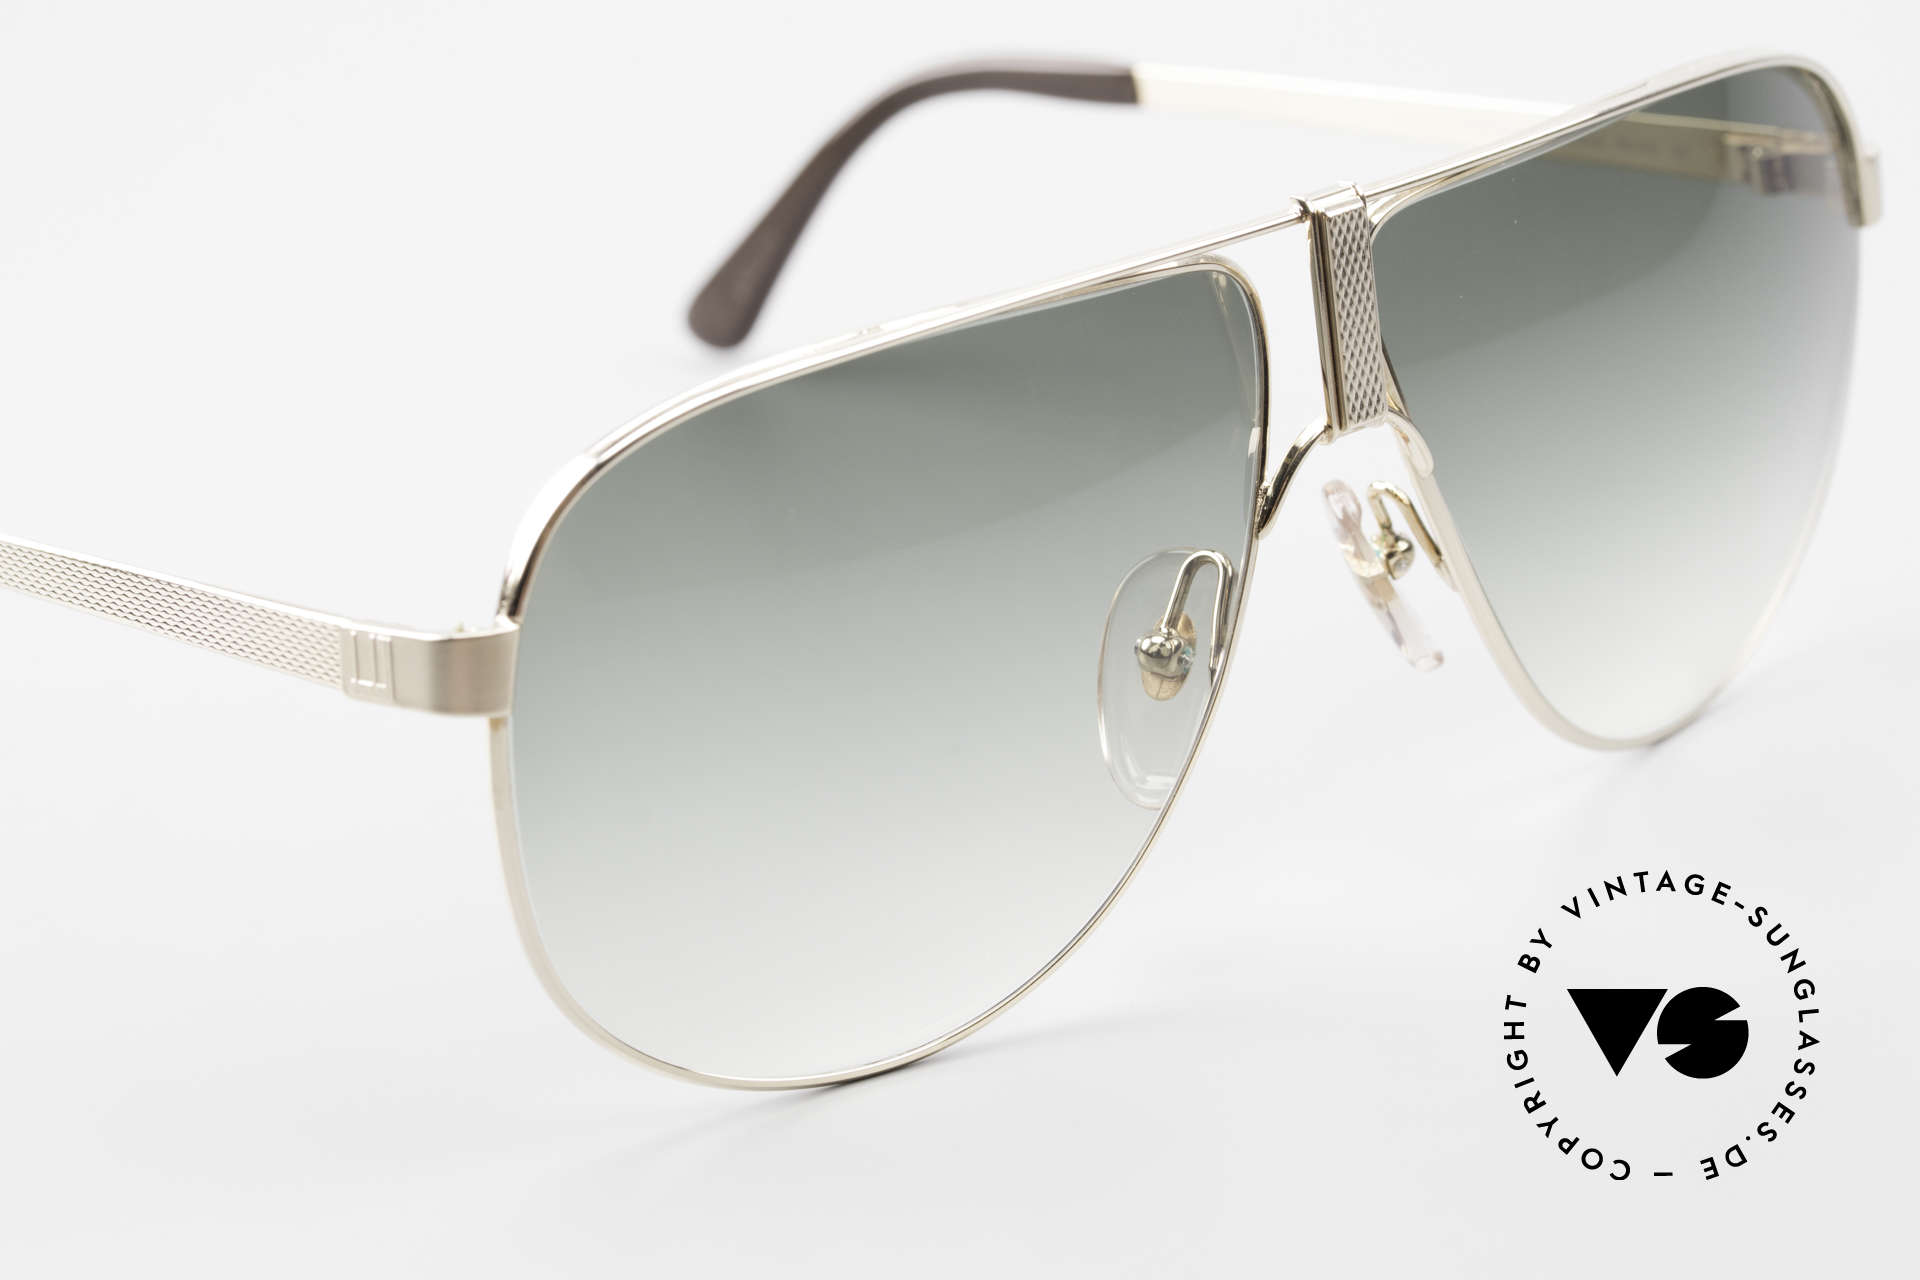 Dunhill 6043 Gold Plated Men's Sunglasses, impossible to get such a craftsmanship, today, Made for Men